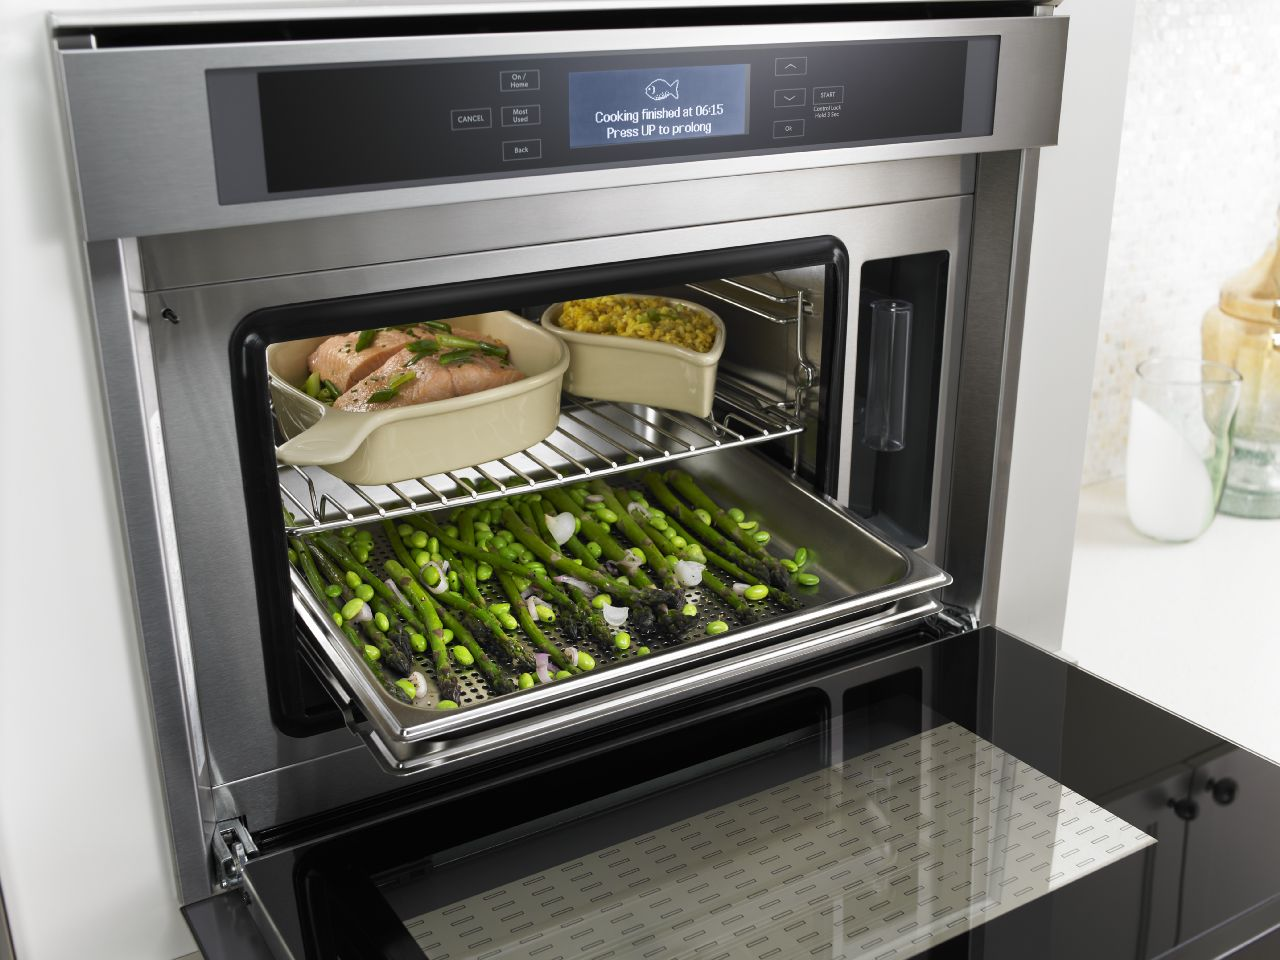 A steam-convection-oven-at-work